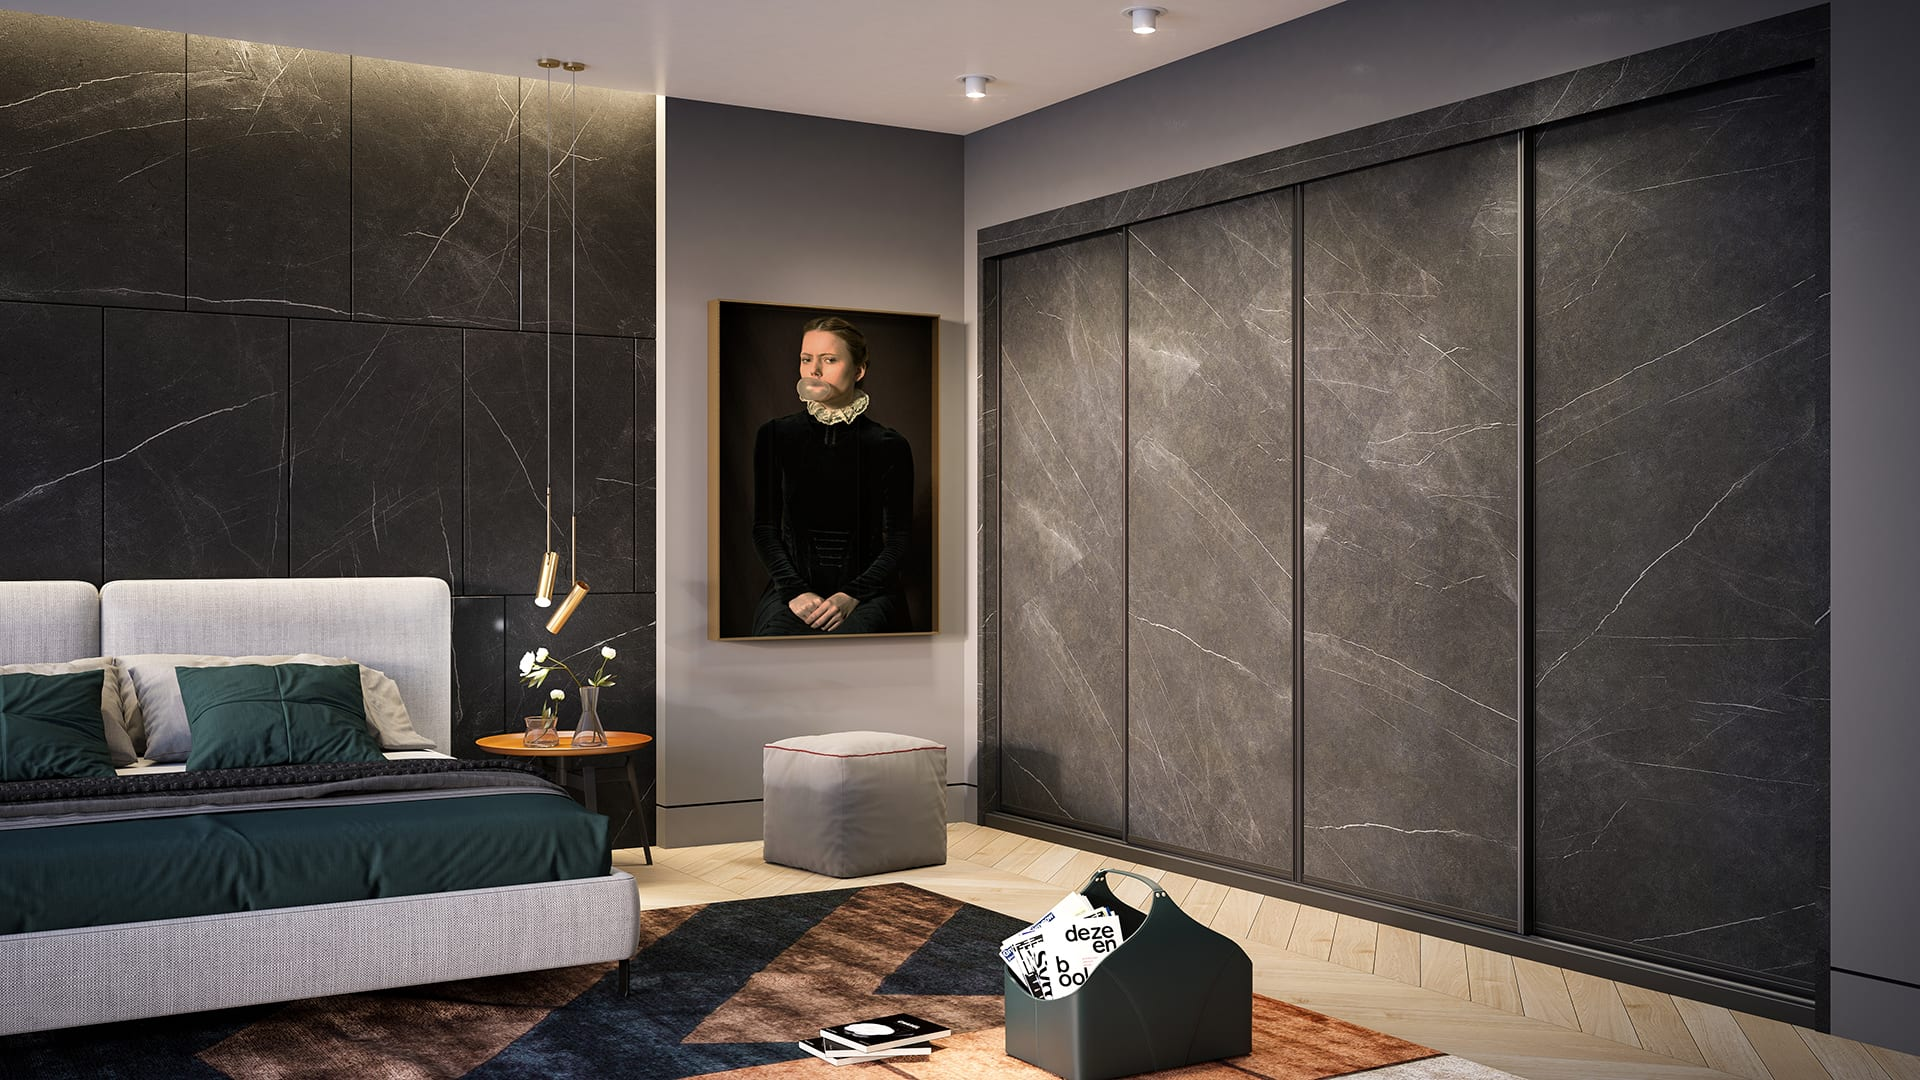 Maayan-Golan_Architectural-Visualization_product-visualization_AGAM-cloests_sliding-four-doors-closet_03